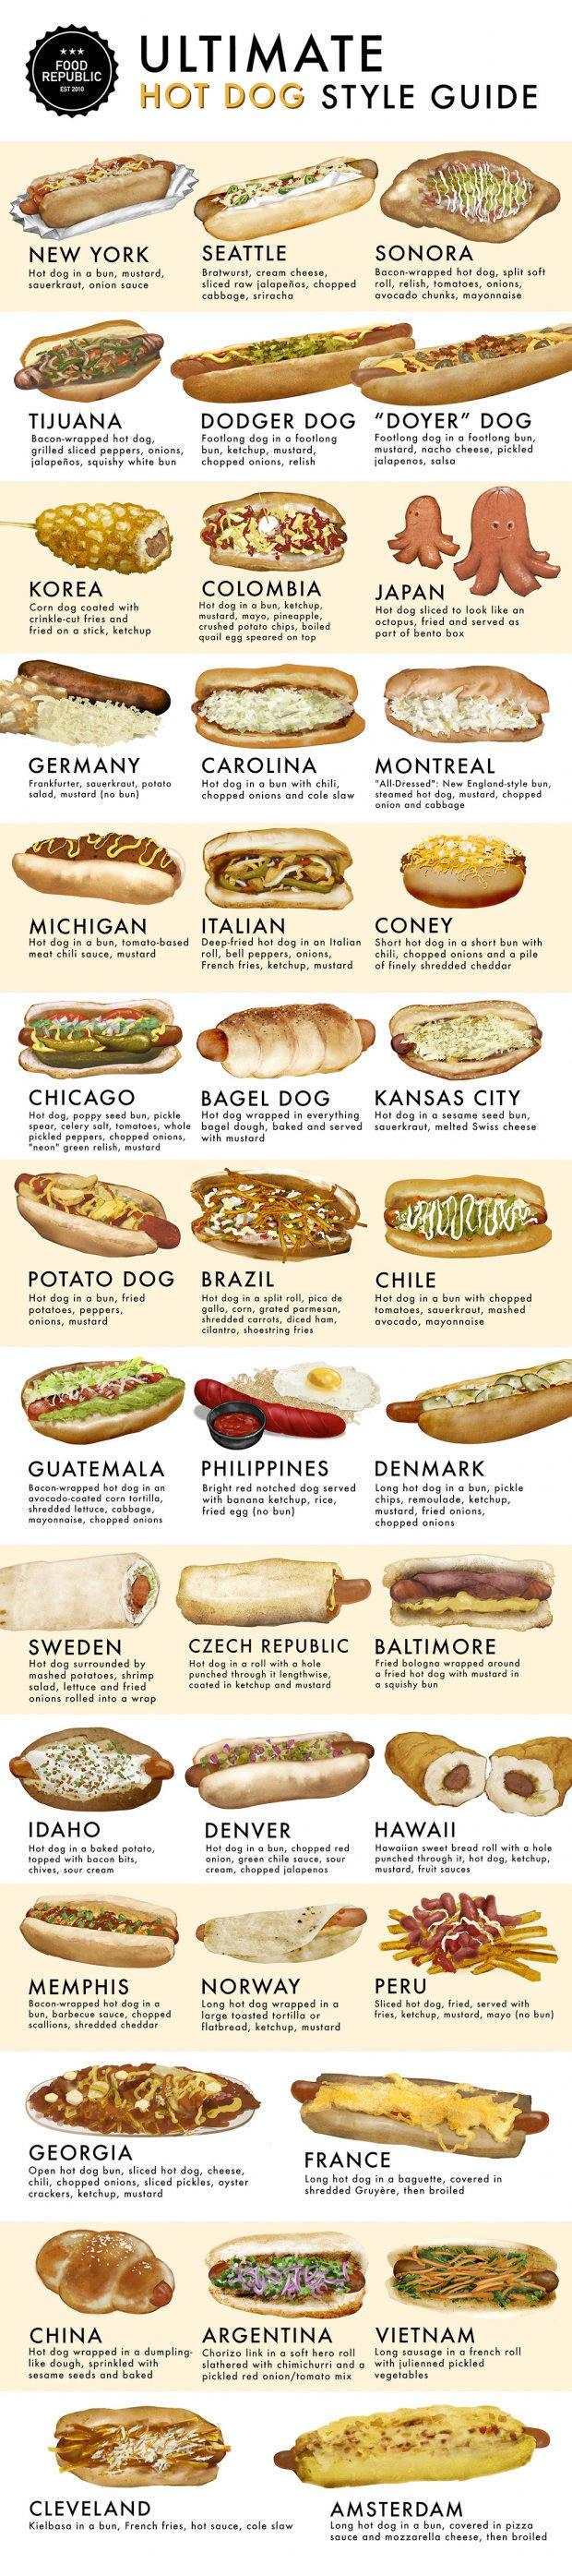 Hot Dog Style Guide!